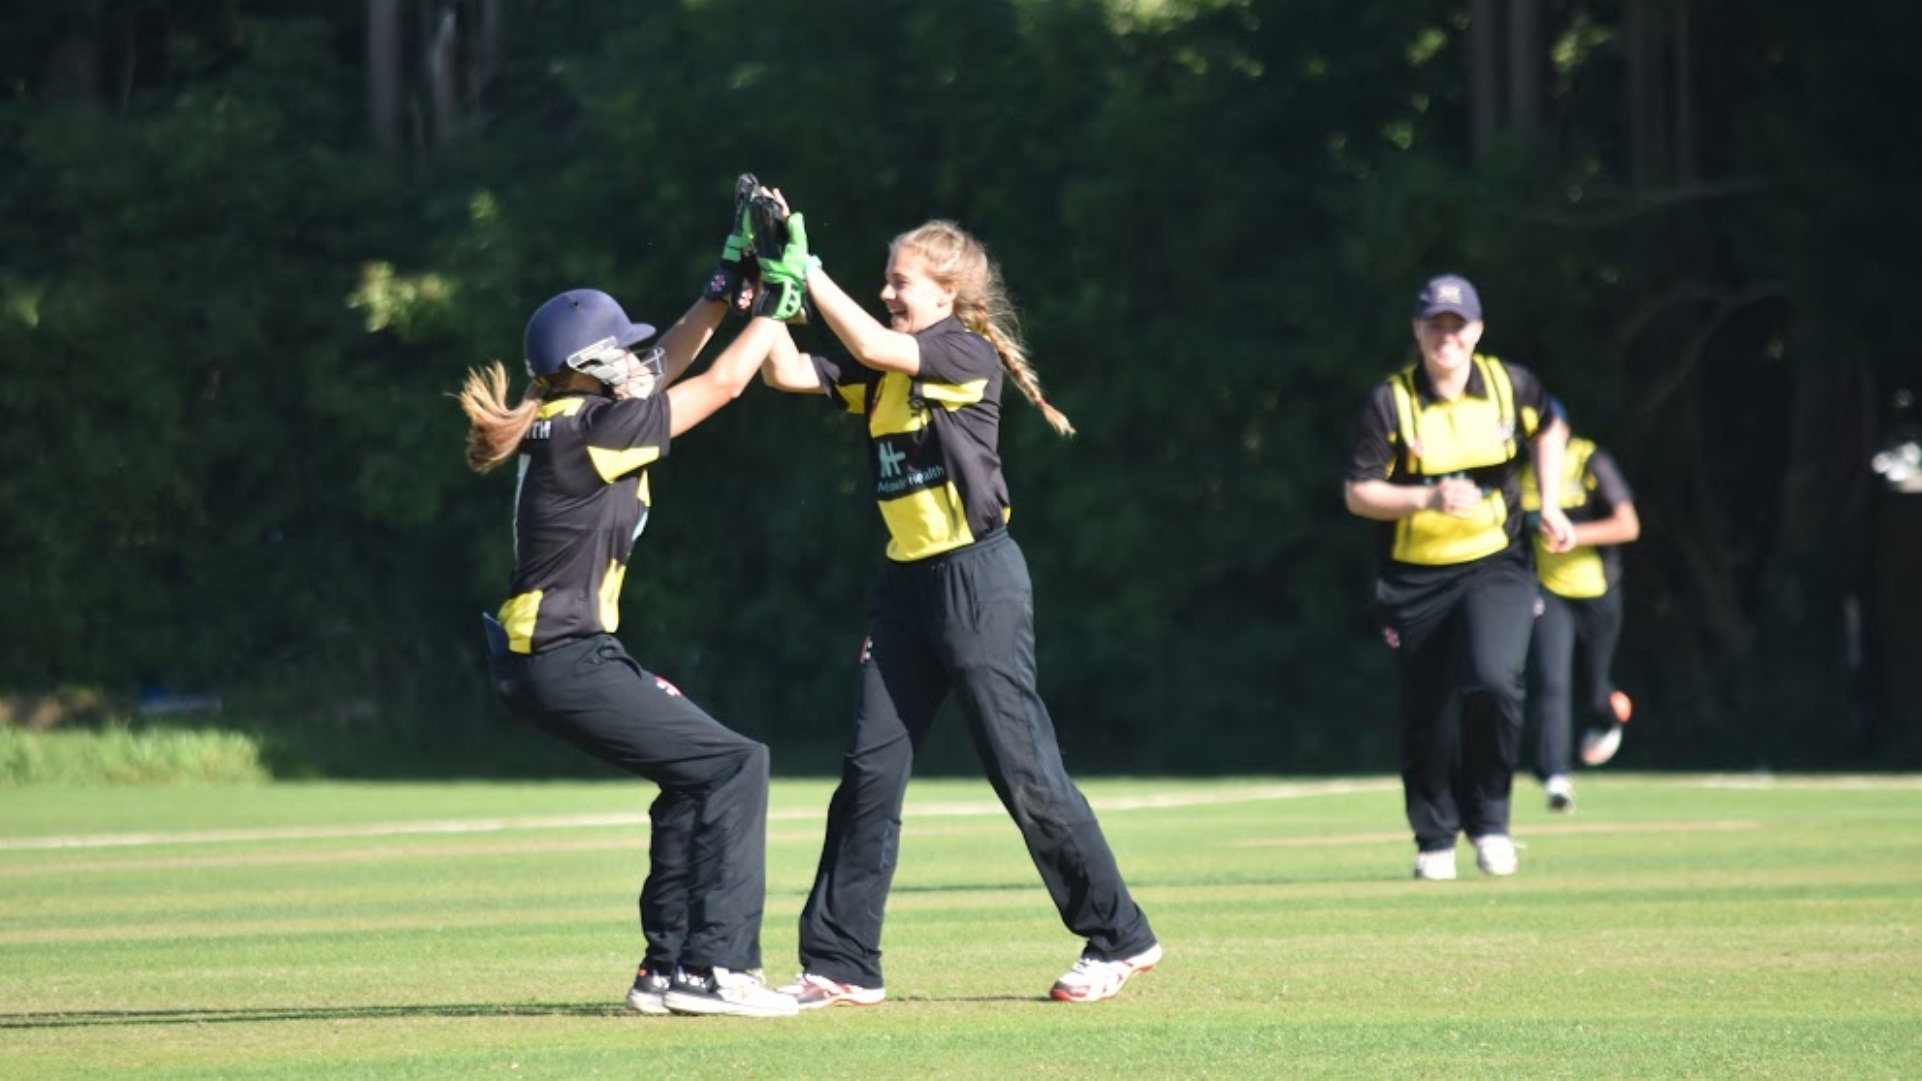 Latest Glos girls county match reports